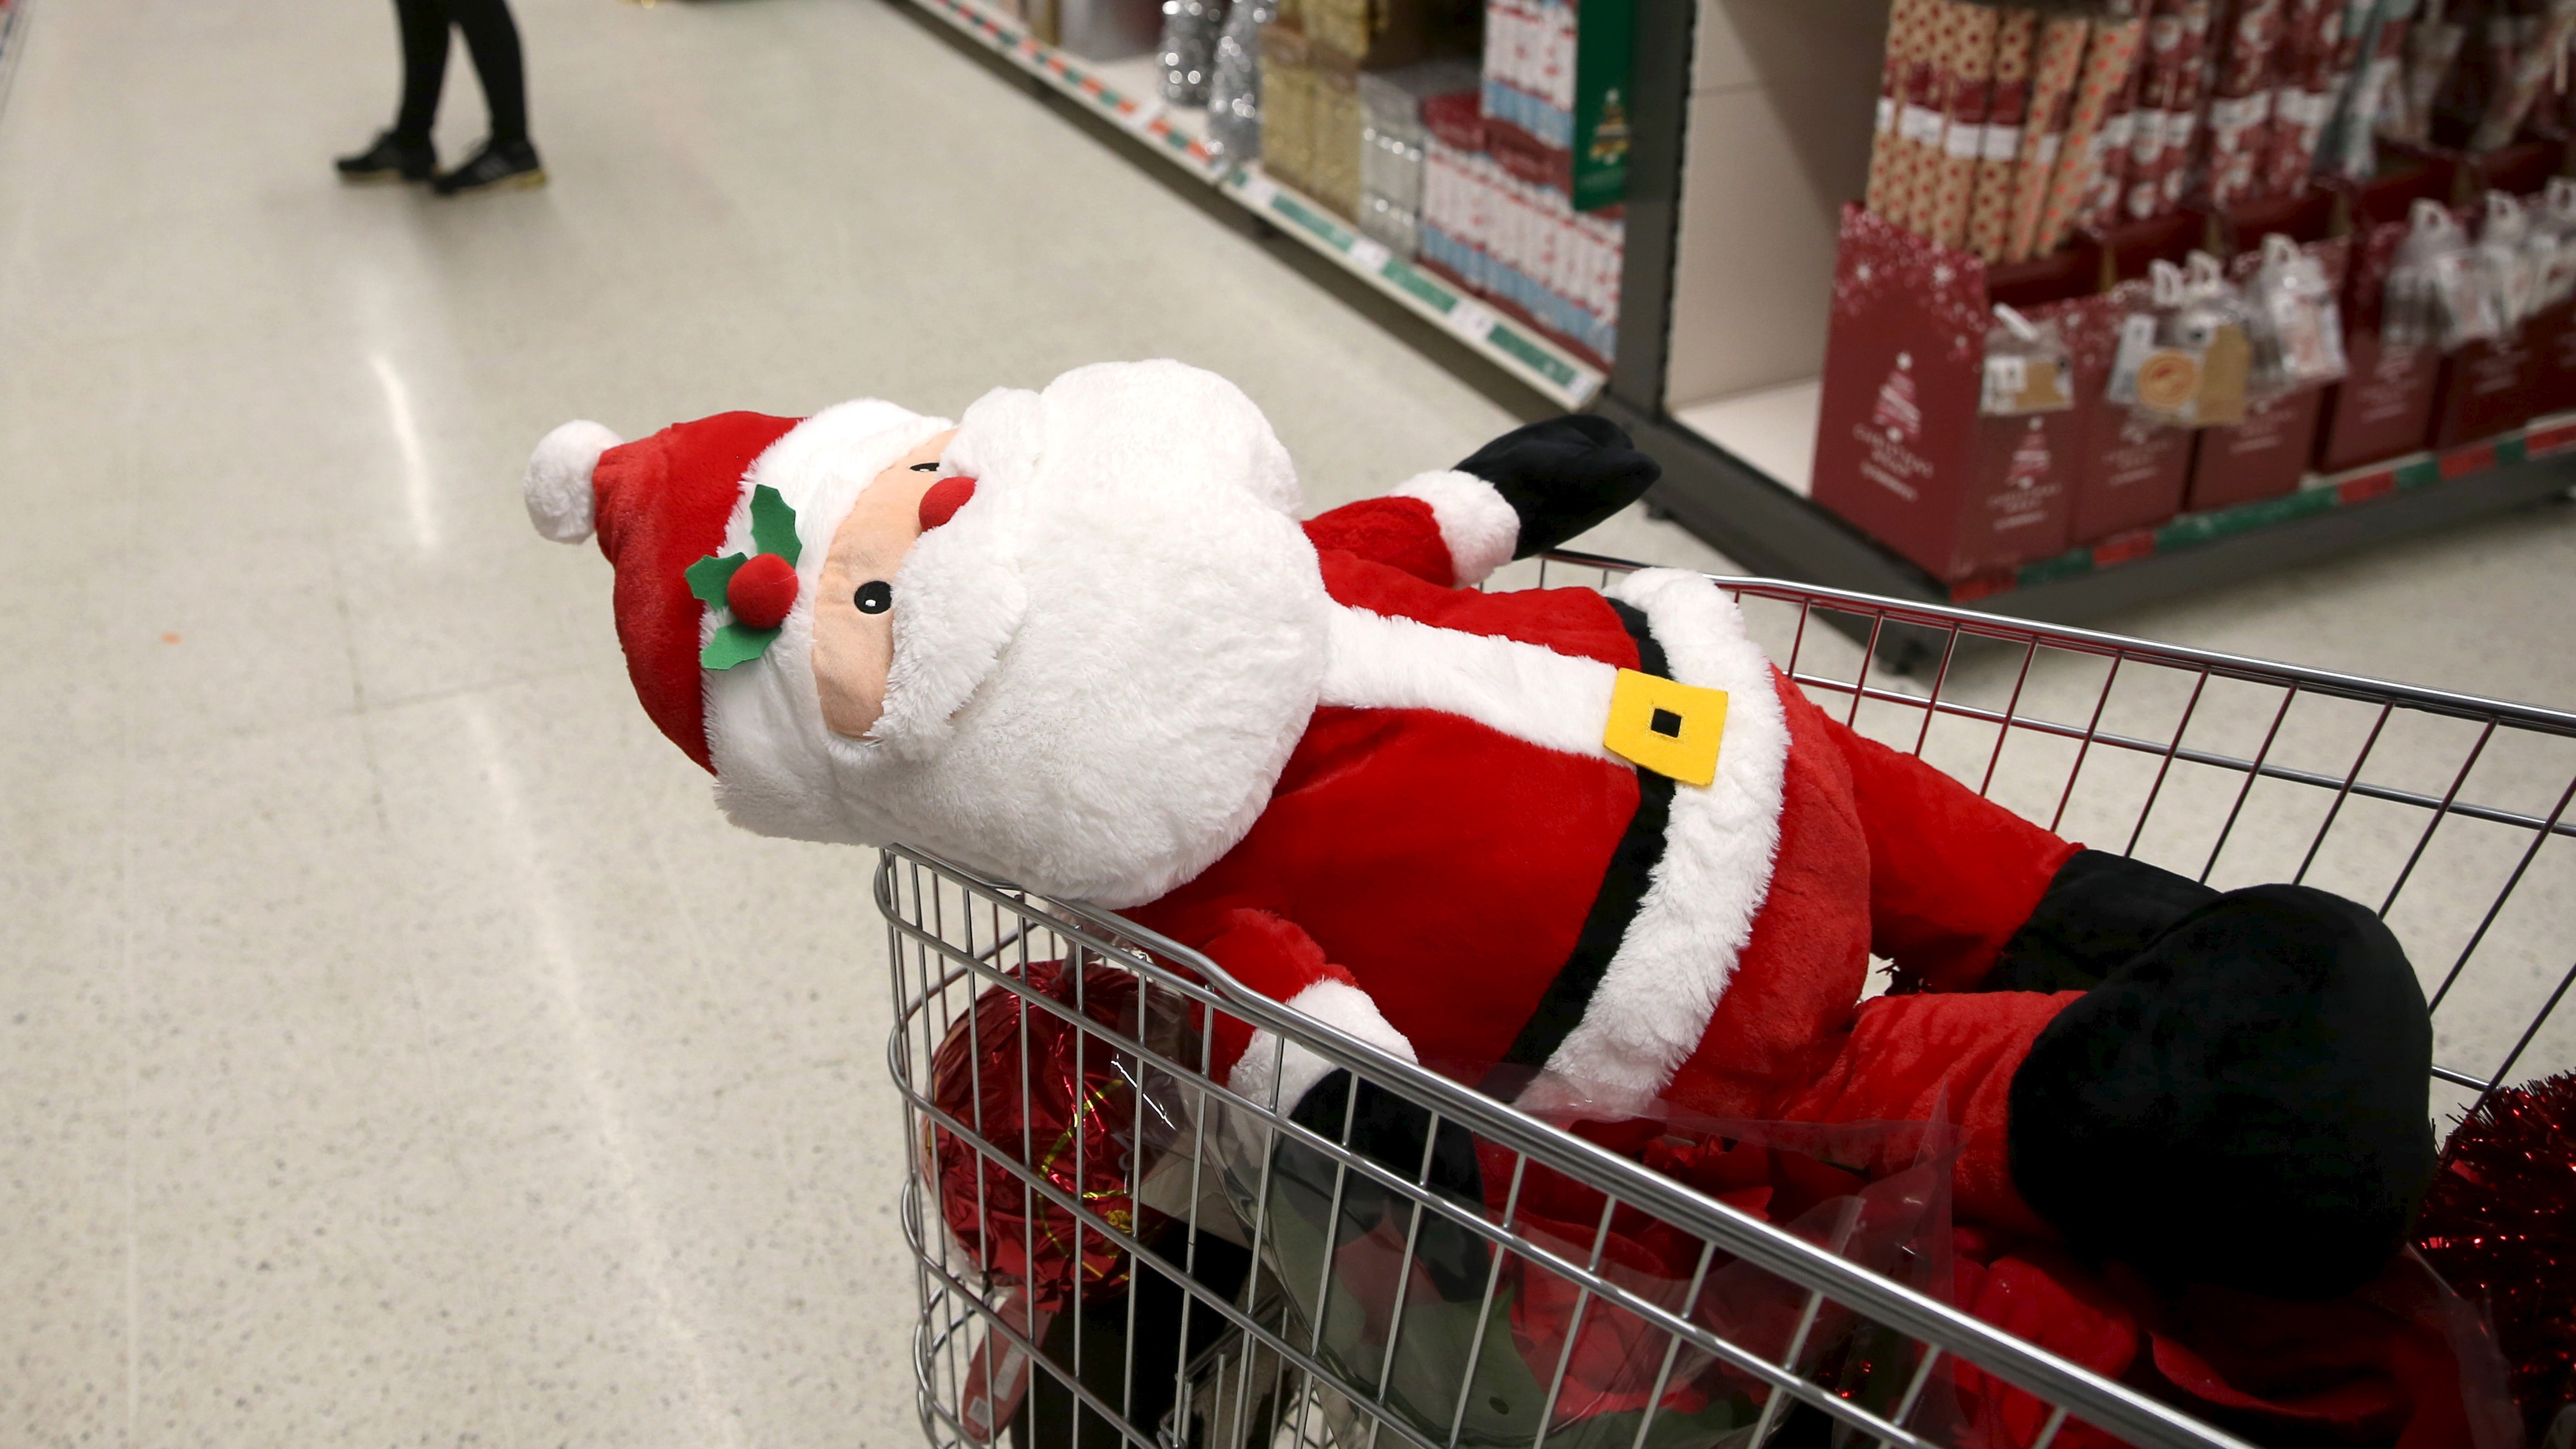 A stuffed santa toy is seen in a shopping trolley at a Sainsbury's store in London December 3, 2015. Britons will spend 20.3 billion pounds ($31 billion) on groceries over the festive period, a 1.4 percent increase on last year, industry research group IGD forecast on Wednesday. The group said its research found 19 percent of shoppers plan to spend more on food and drink over the Christmas period, defined as Nov. 20 to Dec. 26, than the previous Christmas, a trend which could be positive for the likes of market leaders Tesco and Sainsbury. REUTERS/Neil Hall